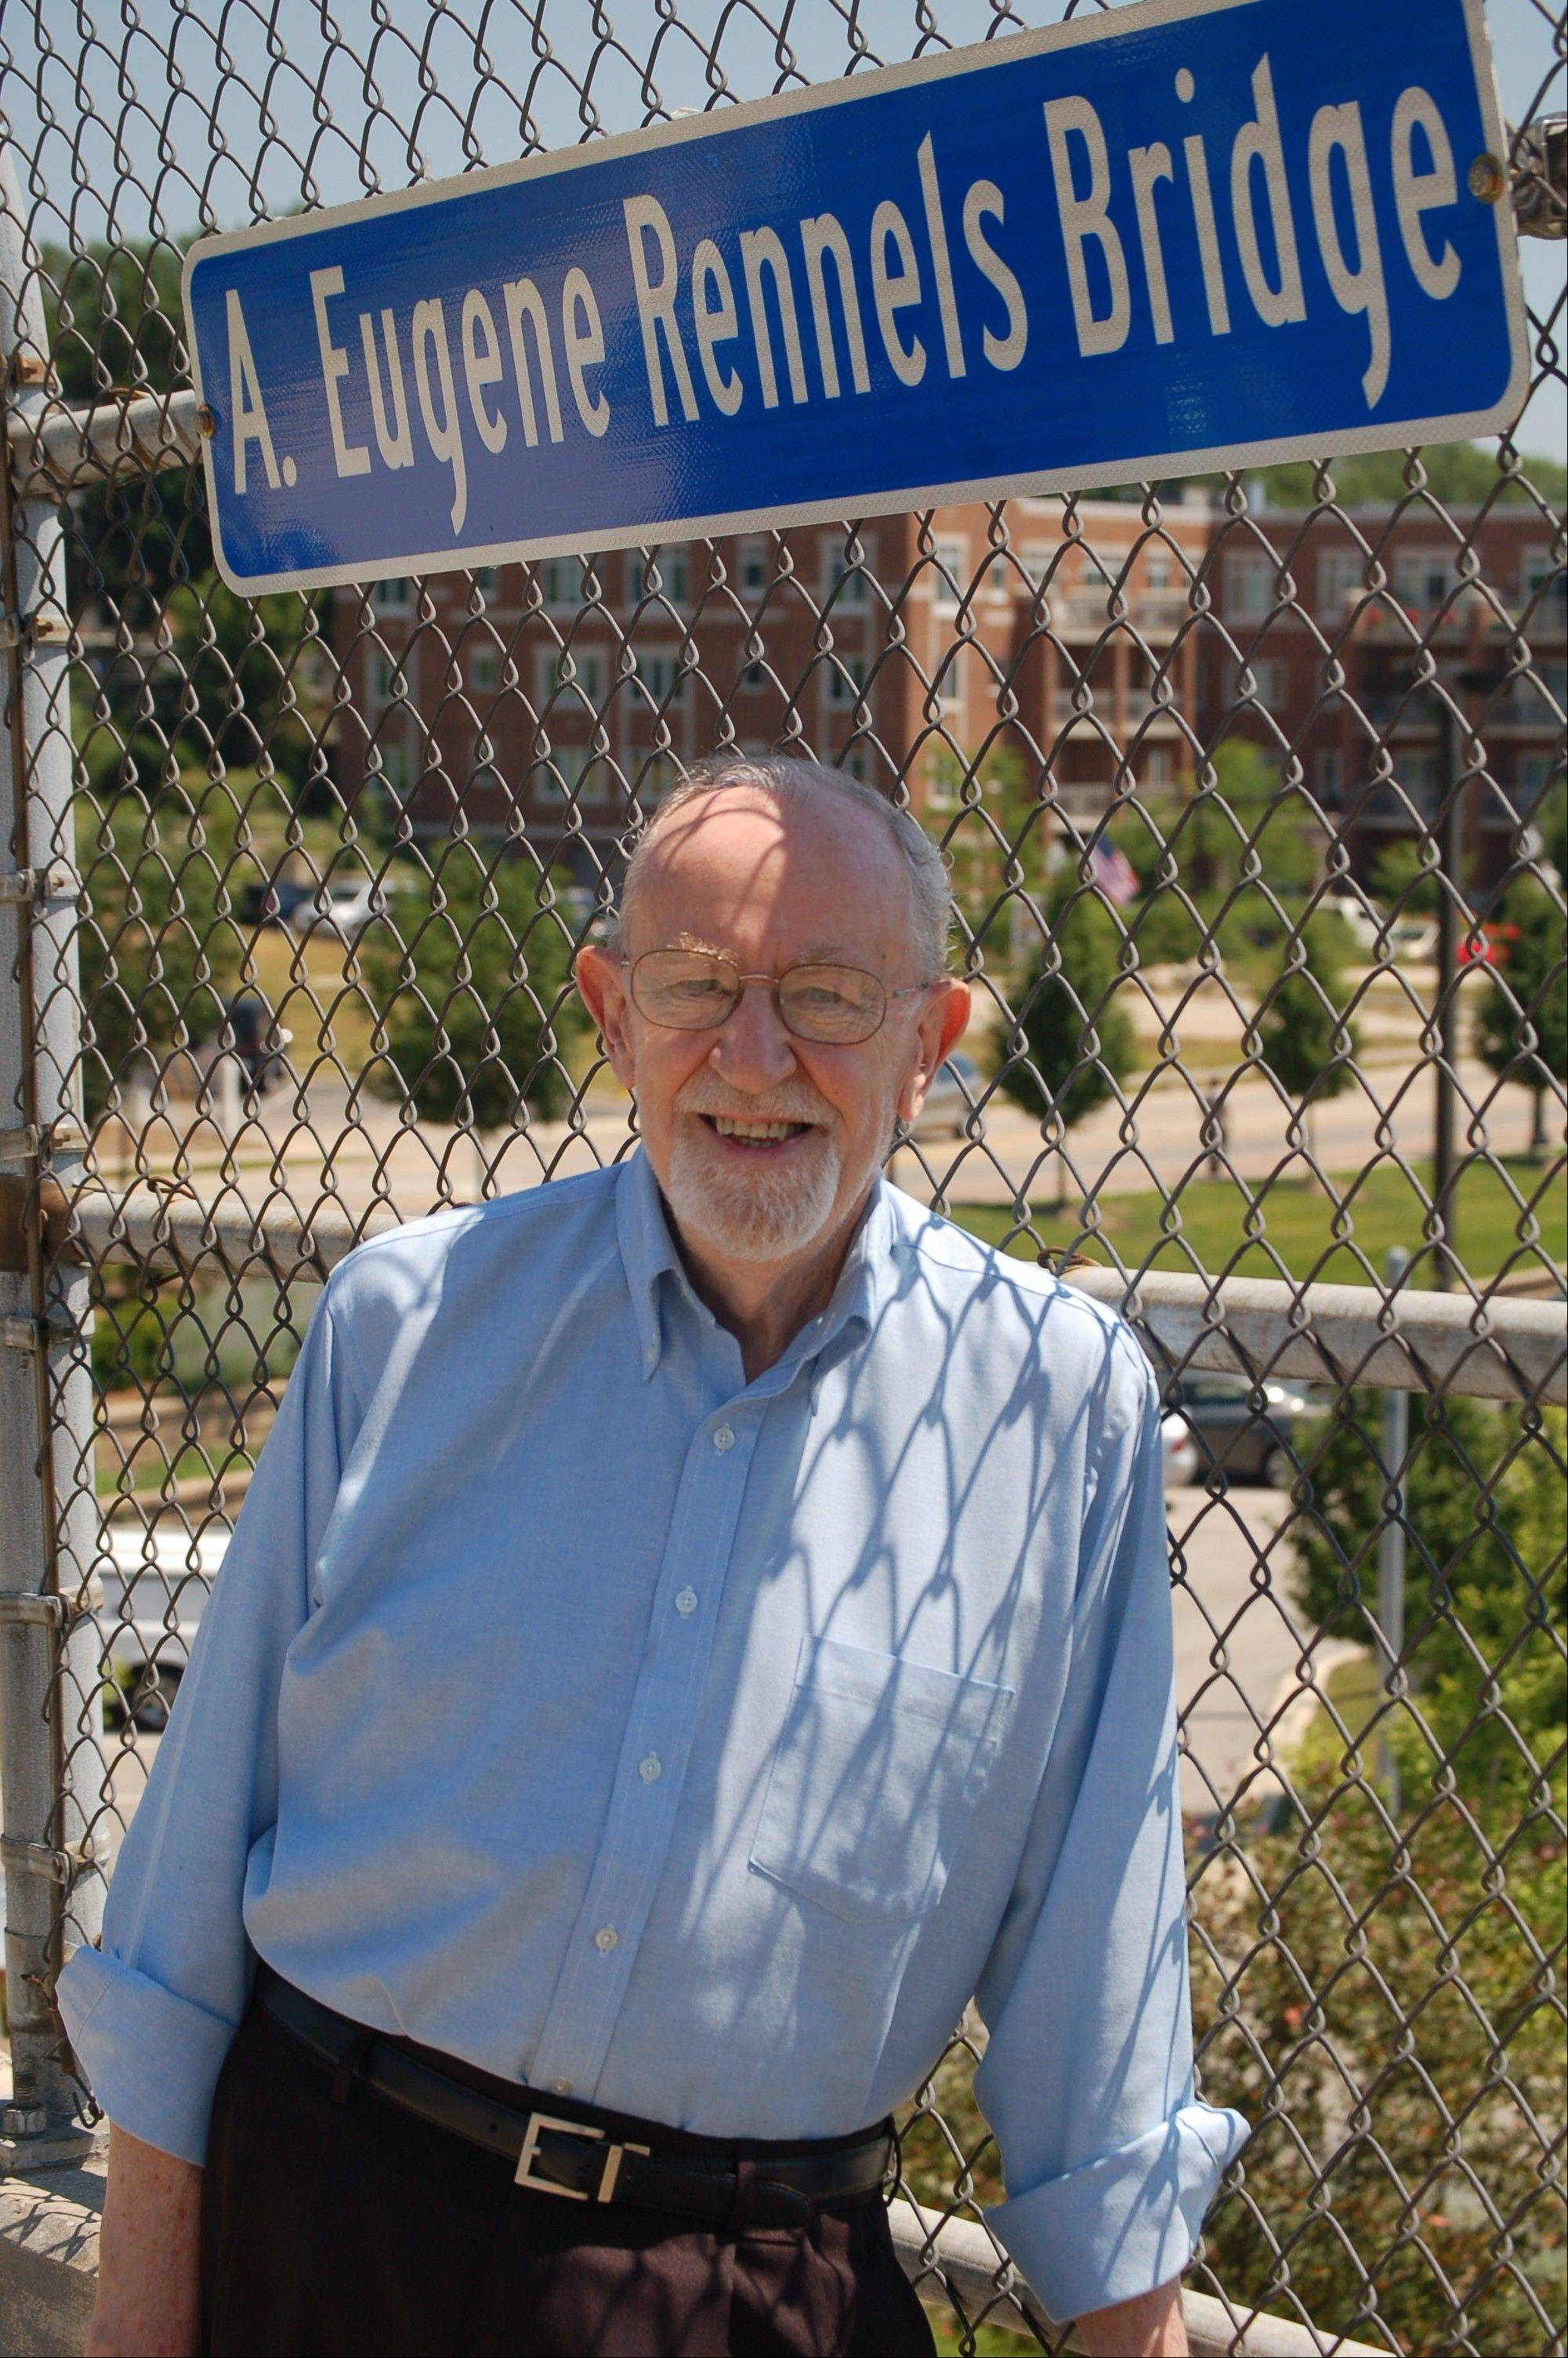 Former West Chicago Mayor A. Eugene Rennels now has a bridge named after him.